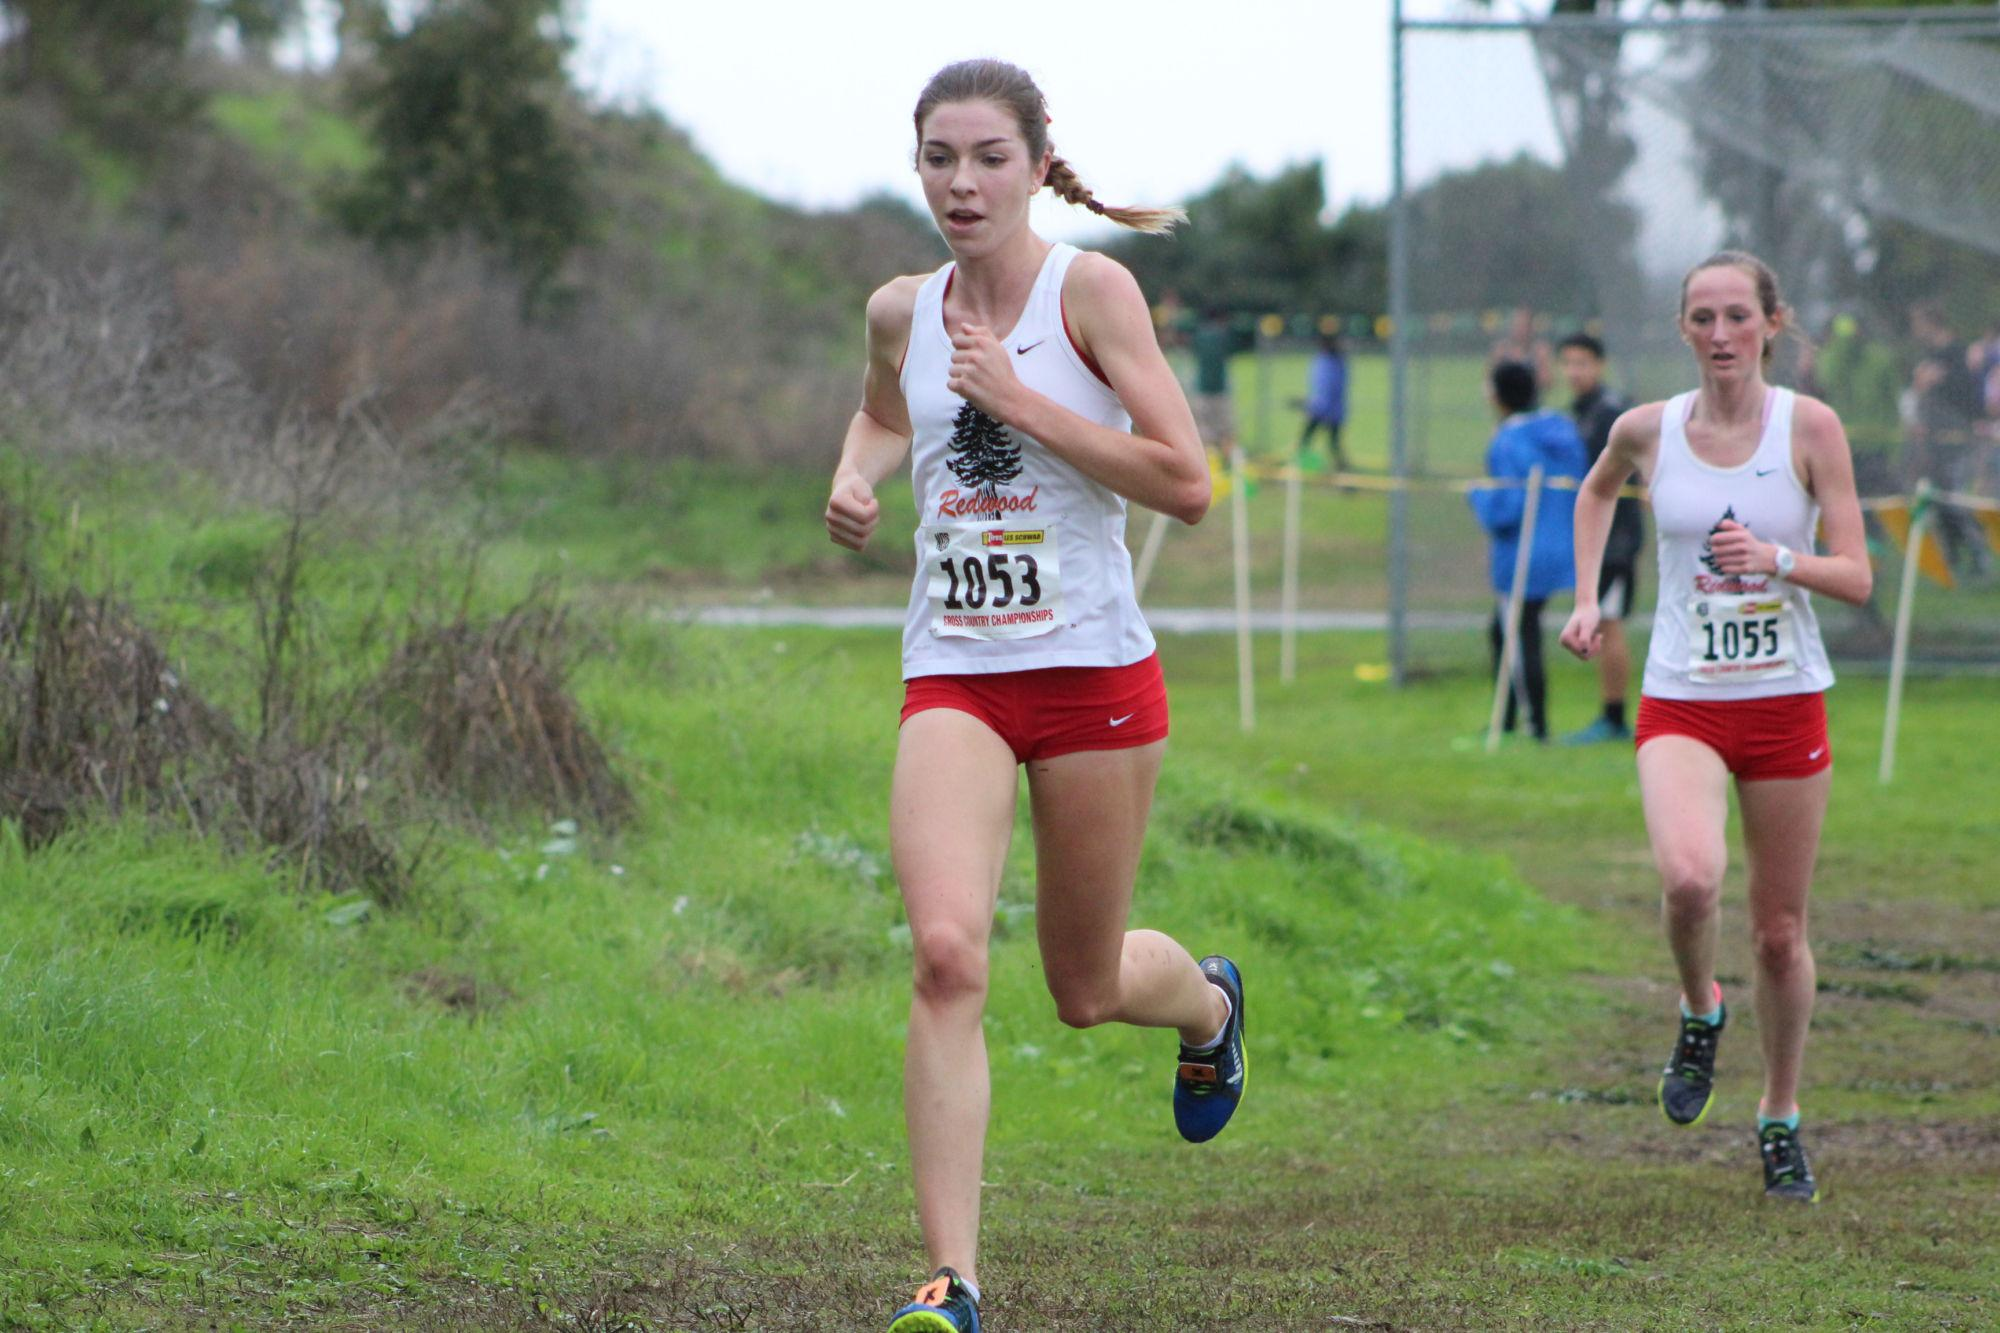 Senior Glennis Murphy runs during a cross country meet.